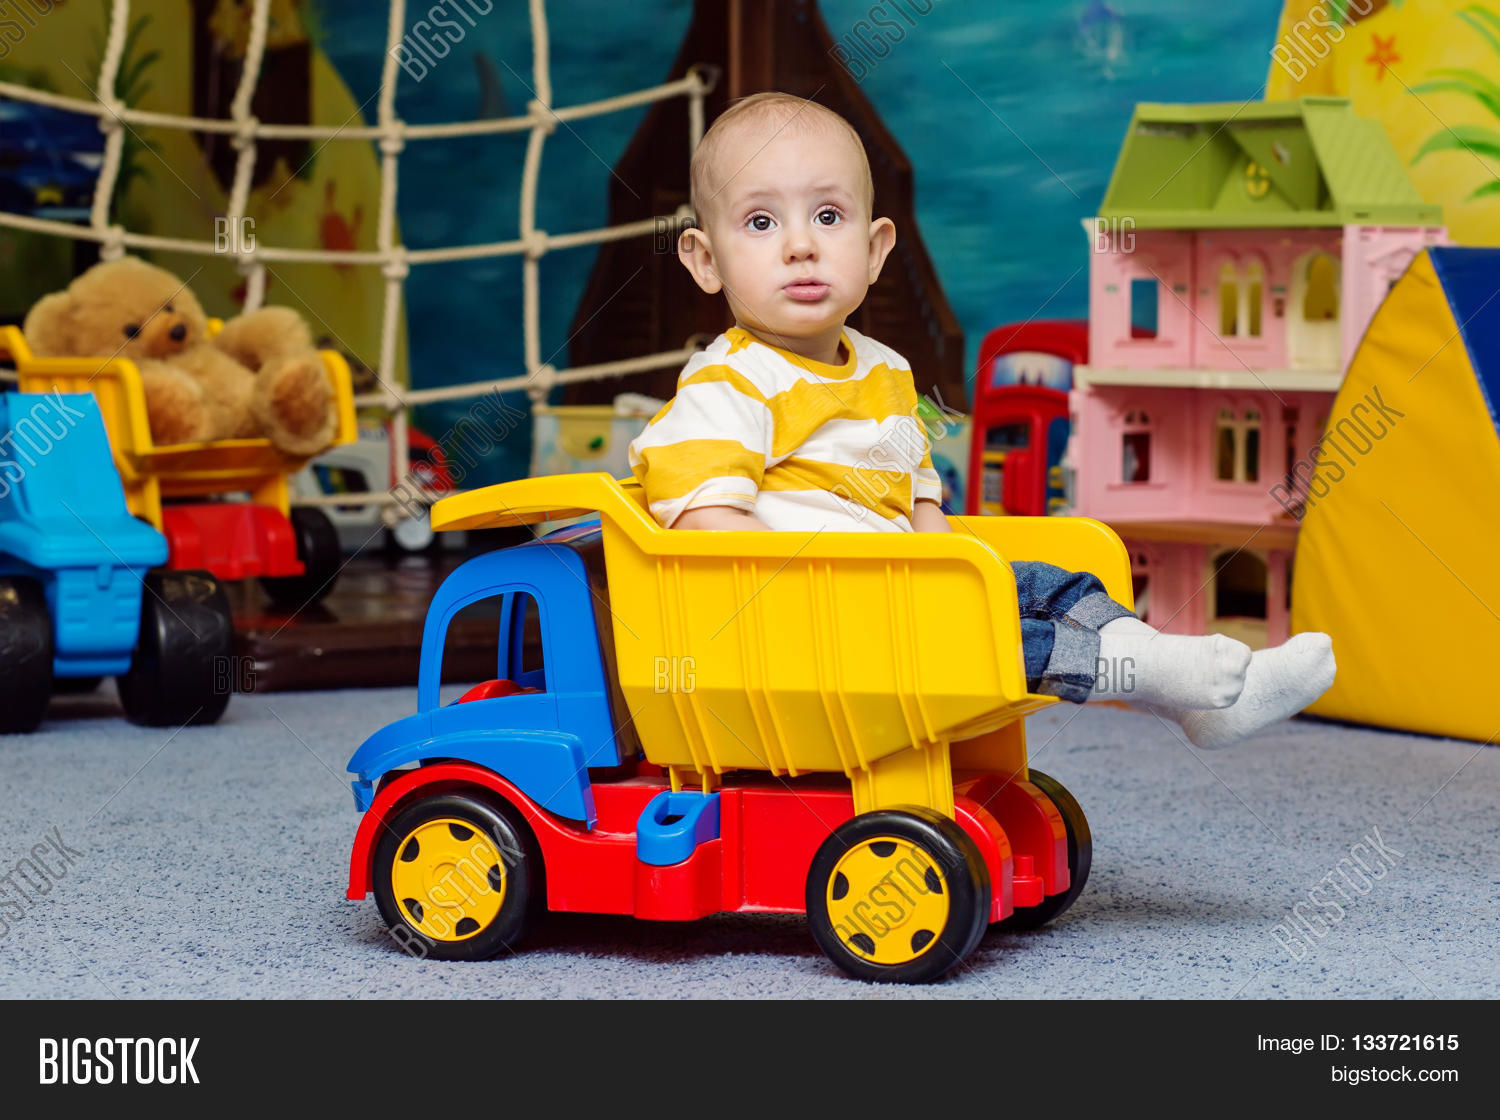 Big Boy Toys Games : Toddler boy sitting toy truck game image photo bigstock